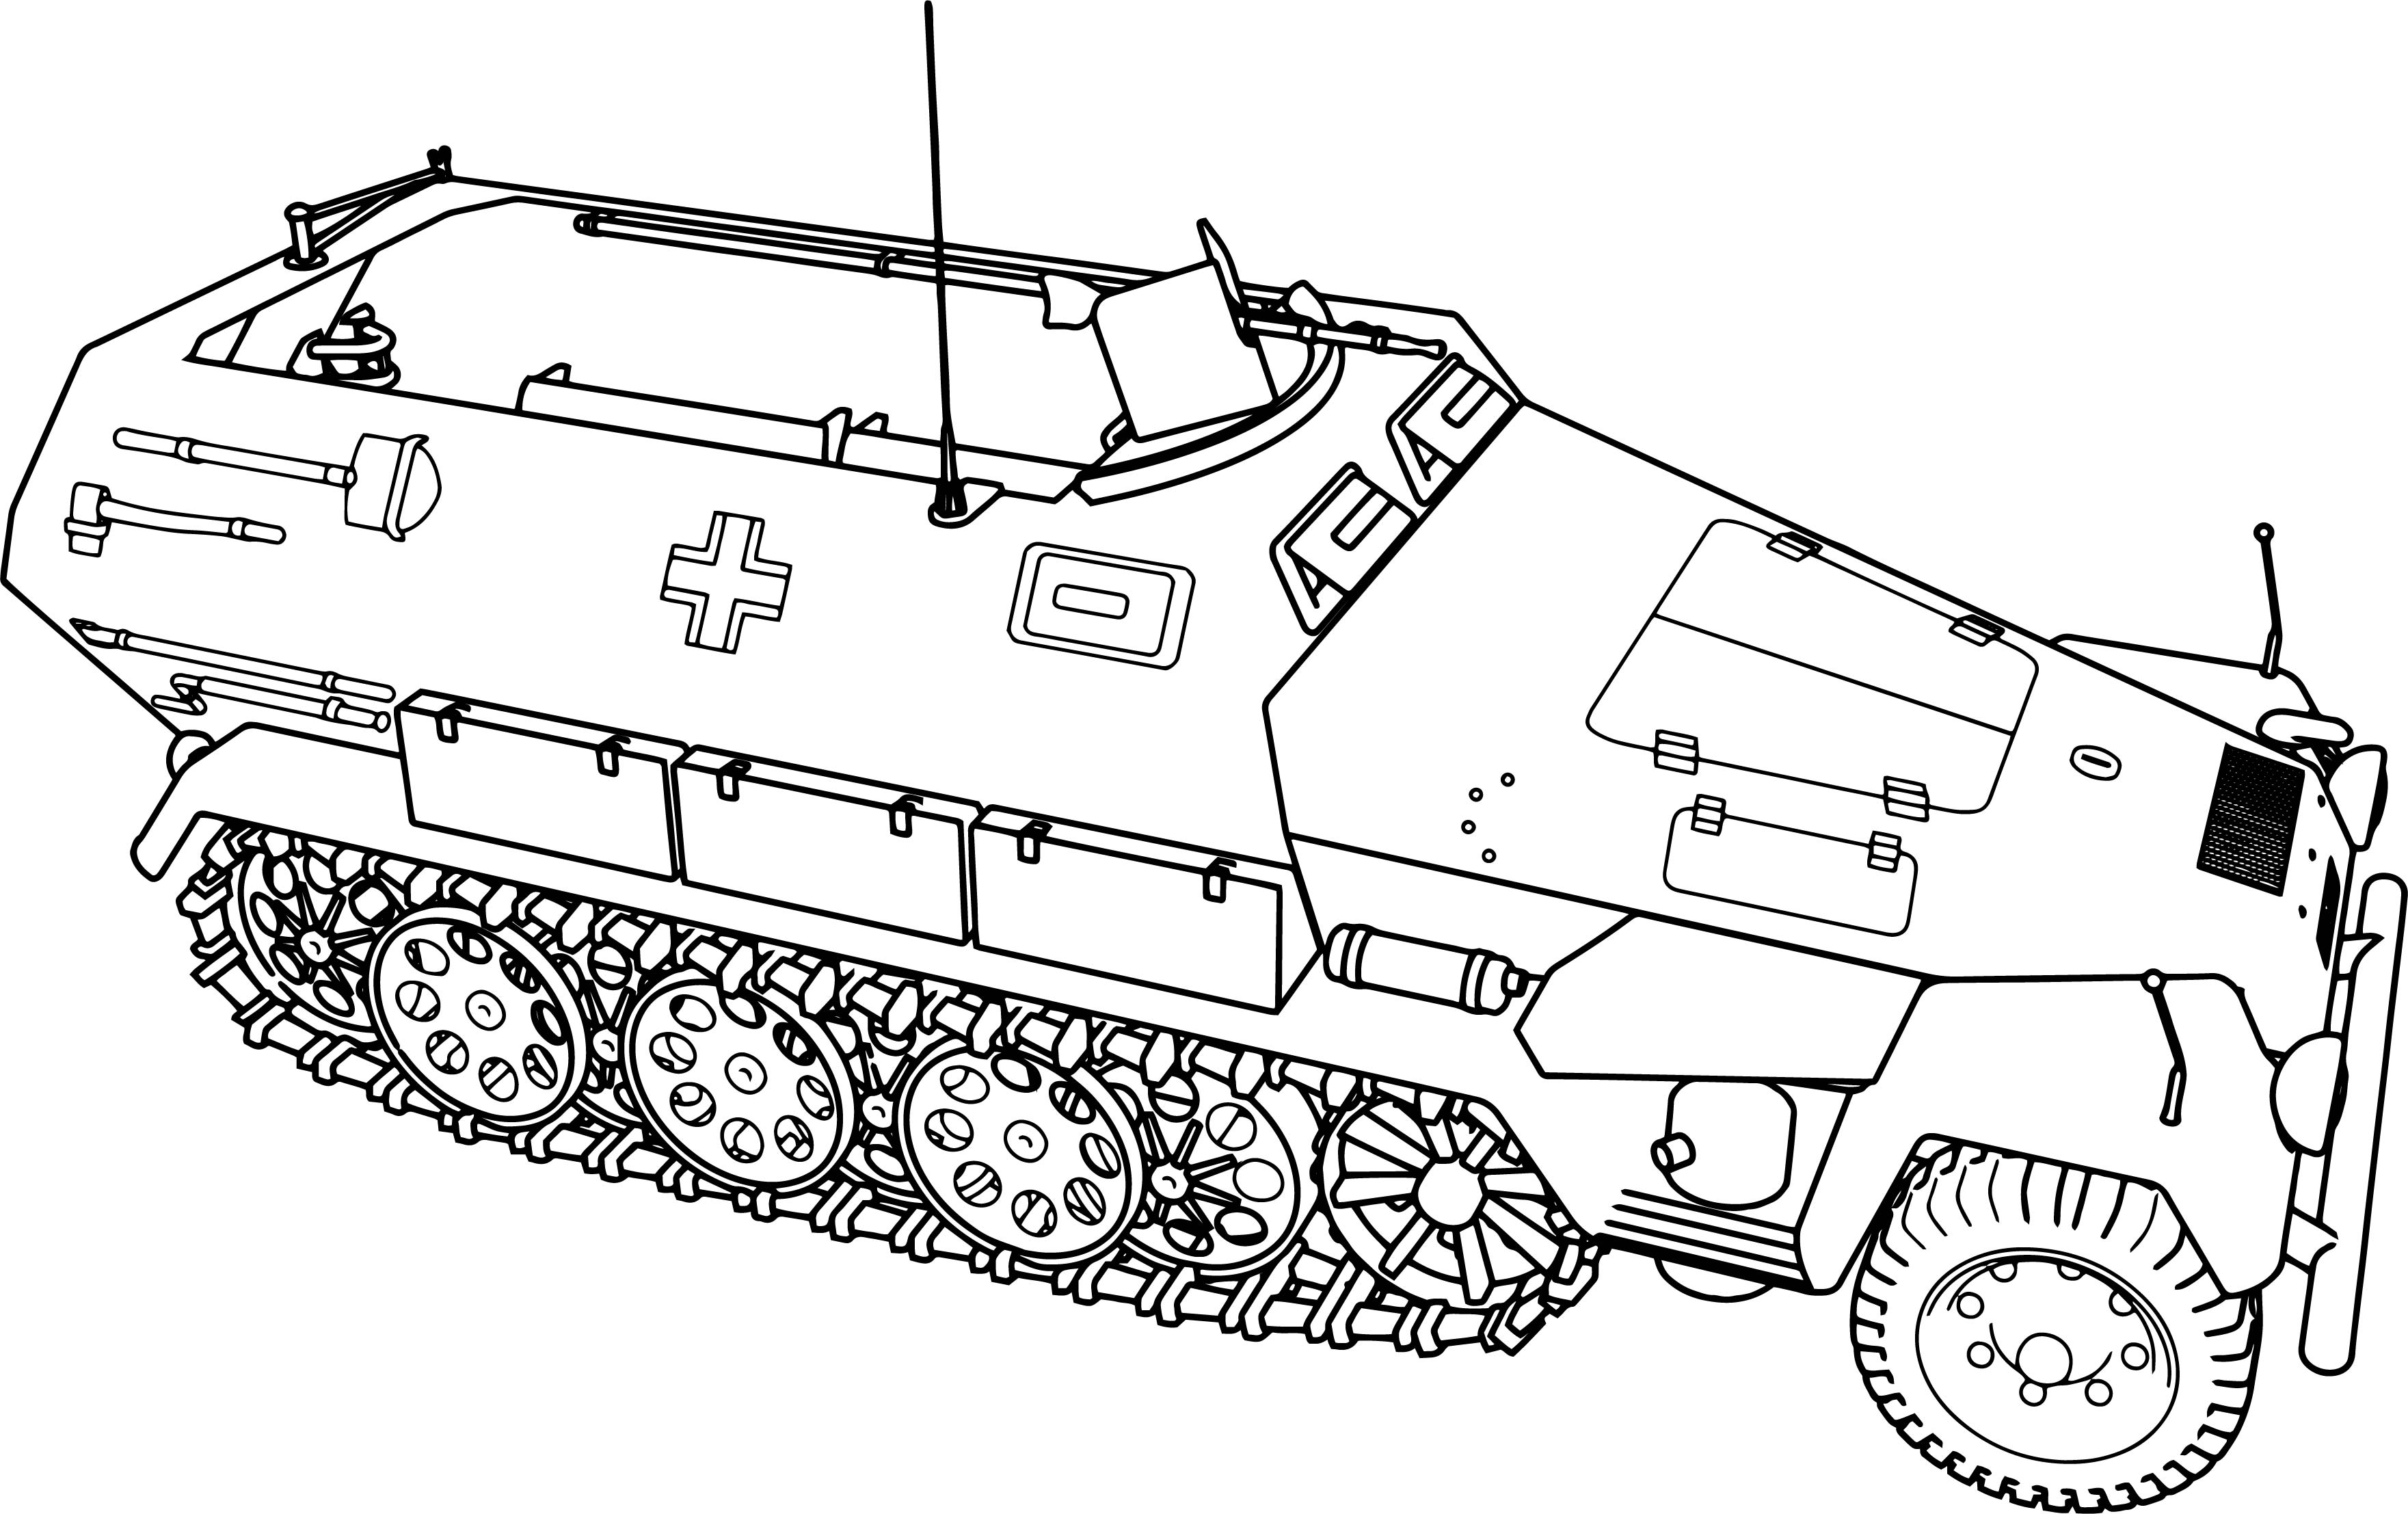 Hanomag sd kfz 251 tank coloring page for Army vehicles coloring pages